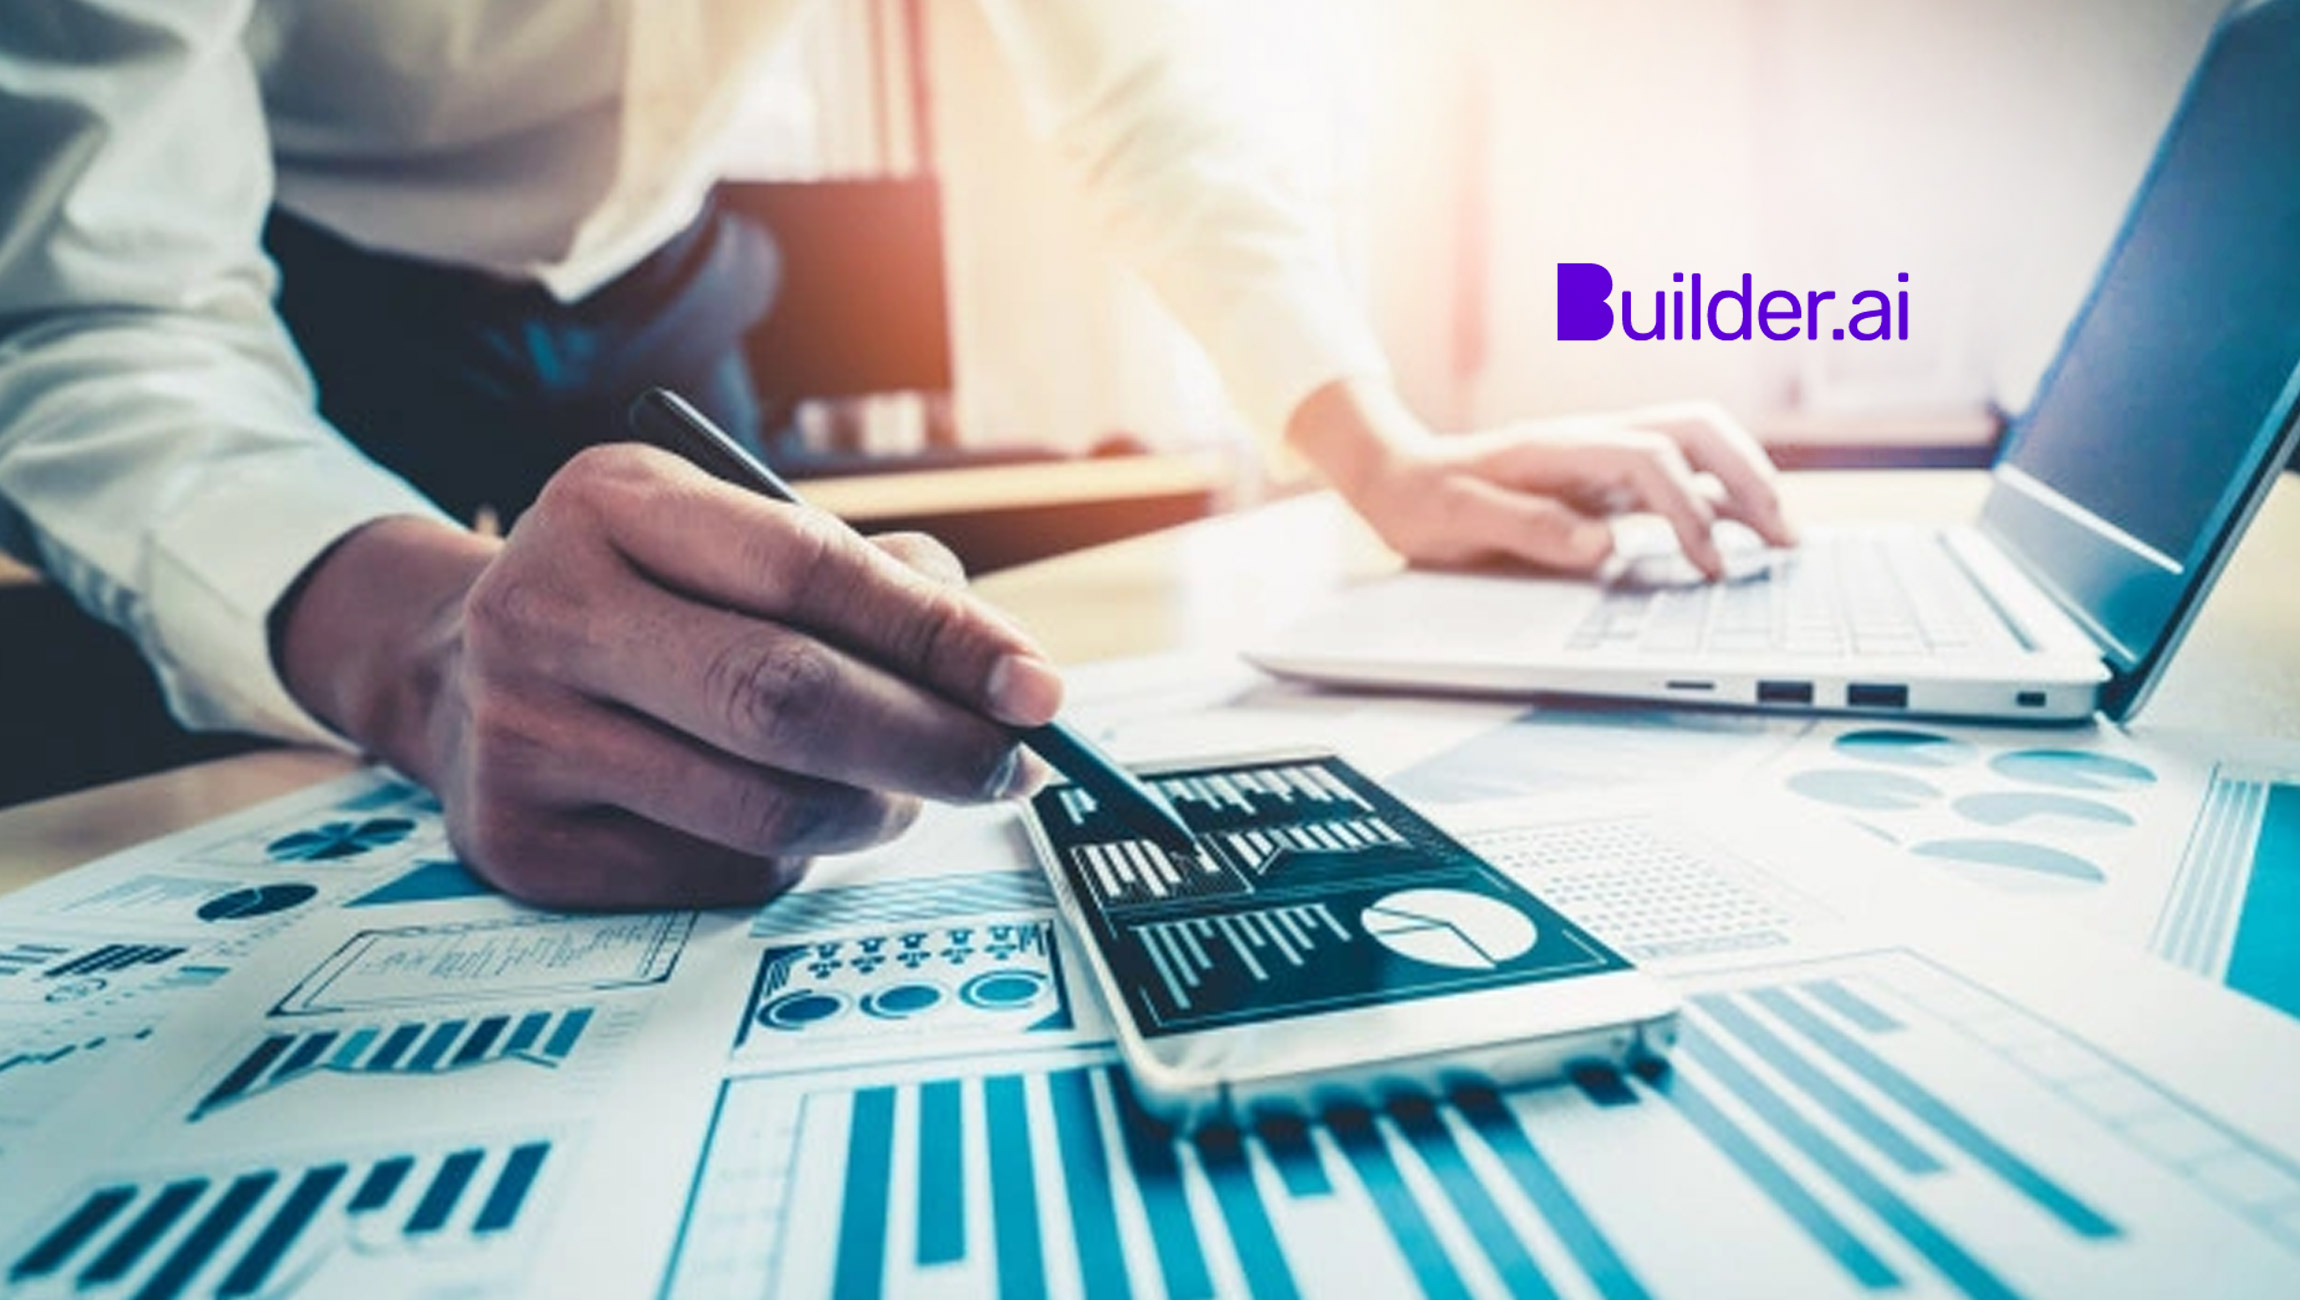 Builder.ai Emerges from 2020 with 230% Growth in Monthly Revenue